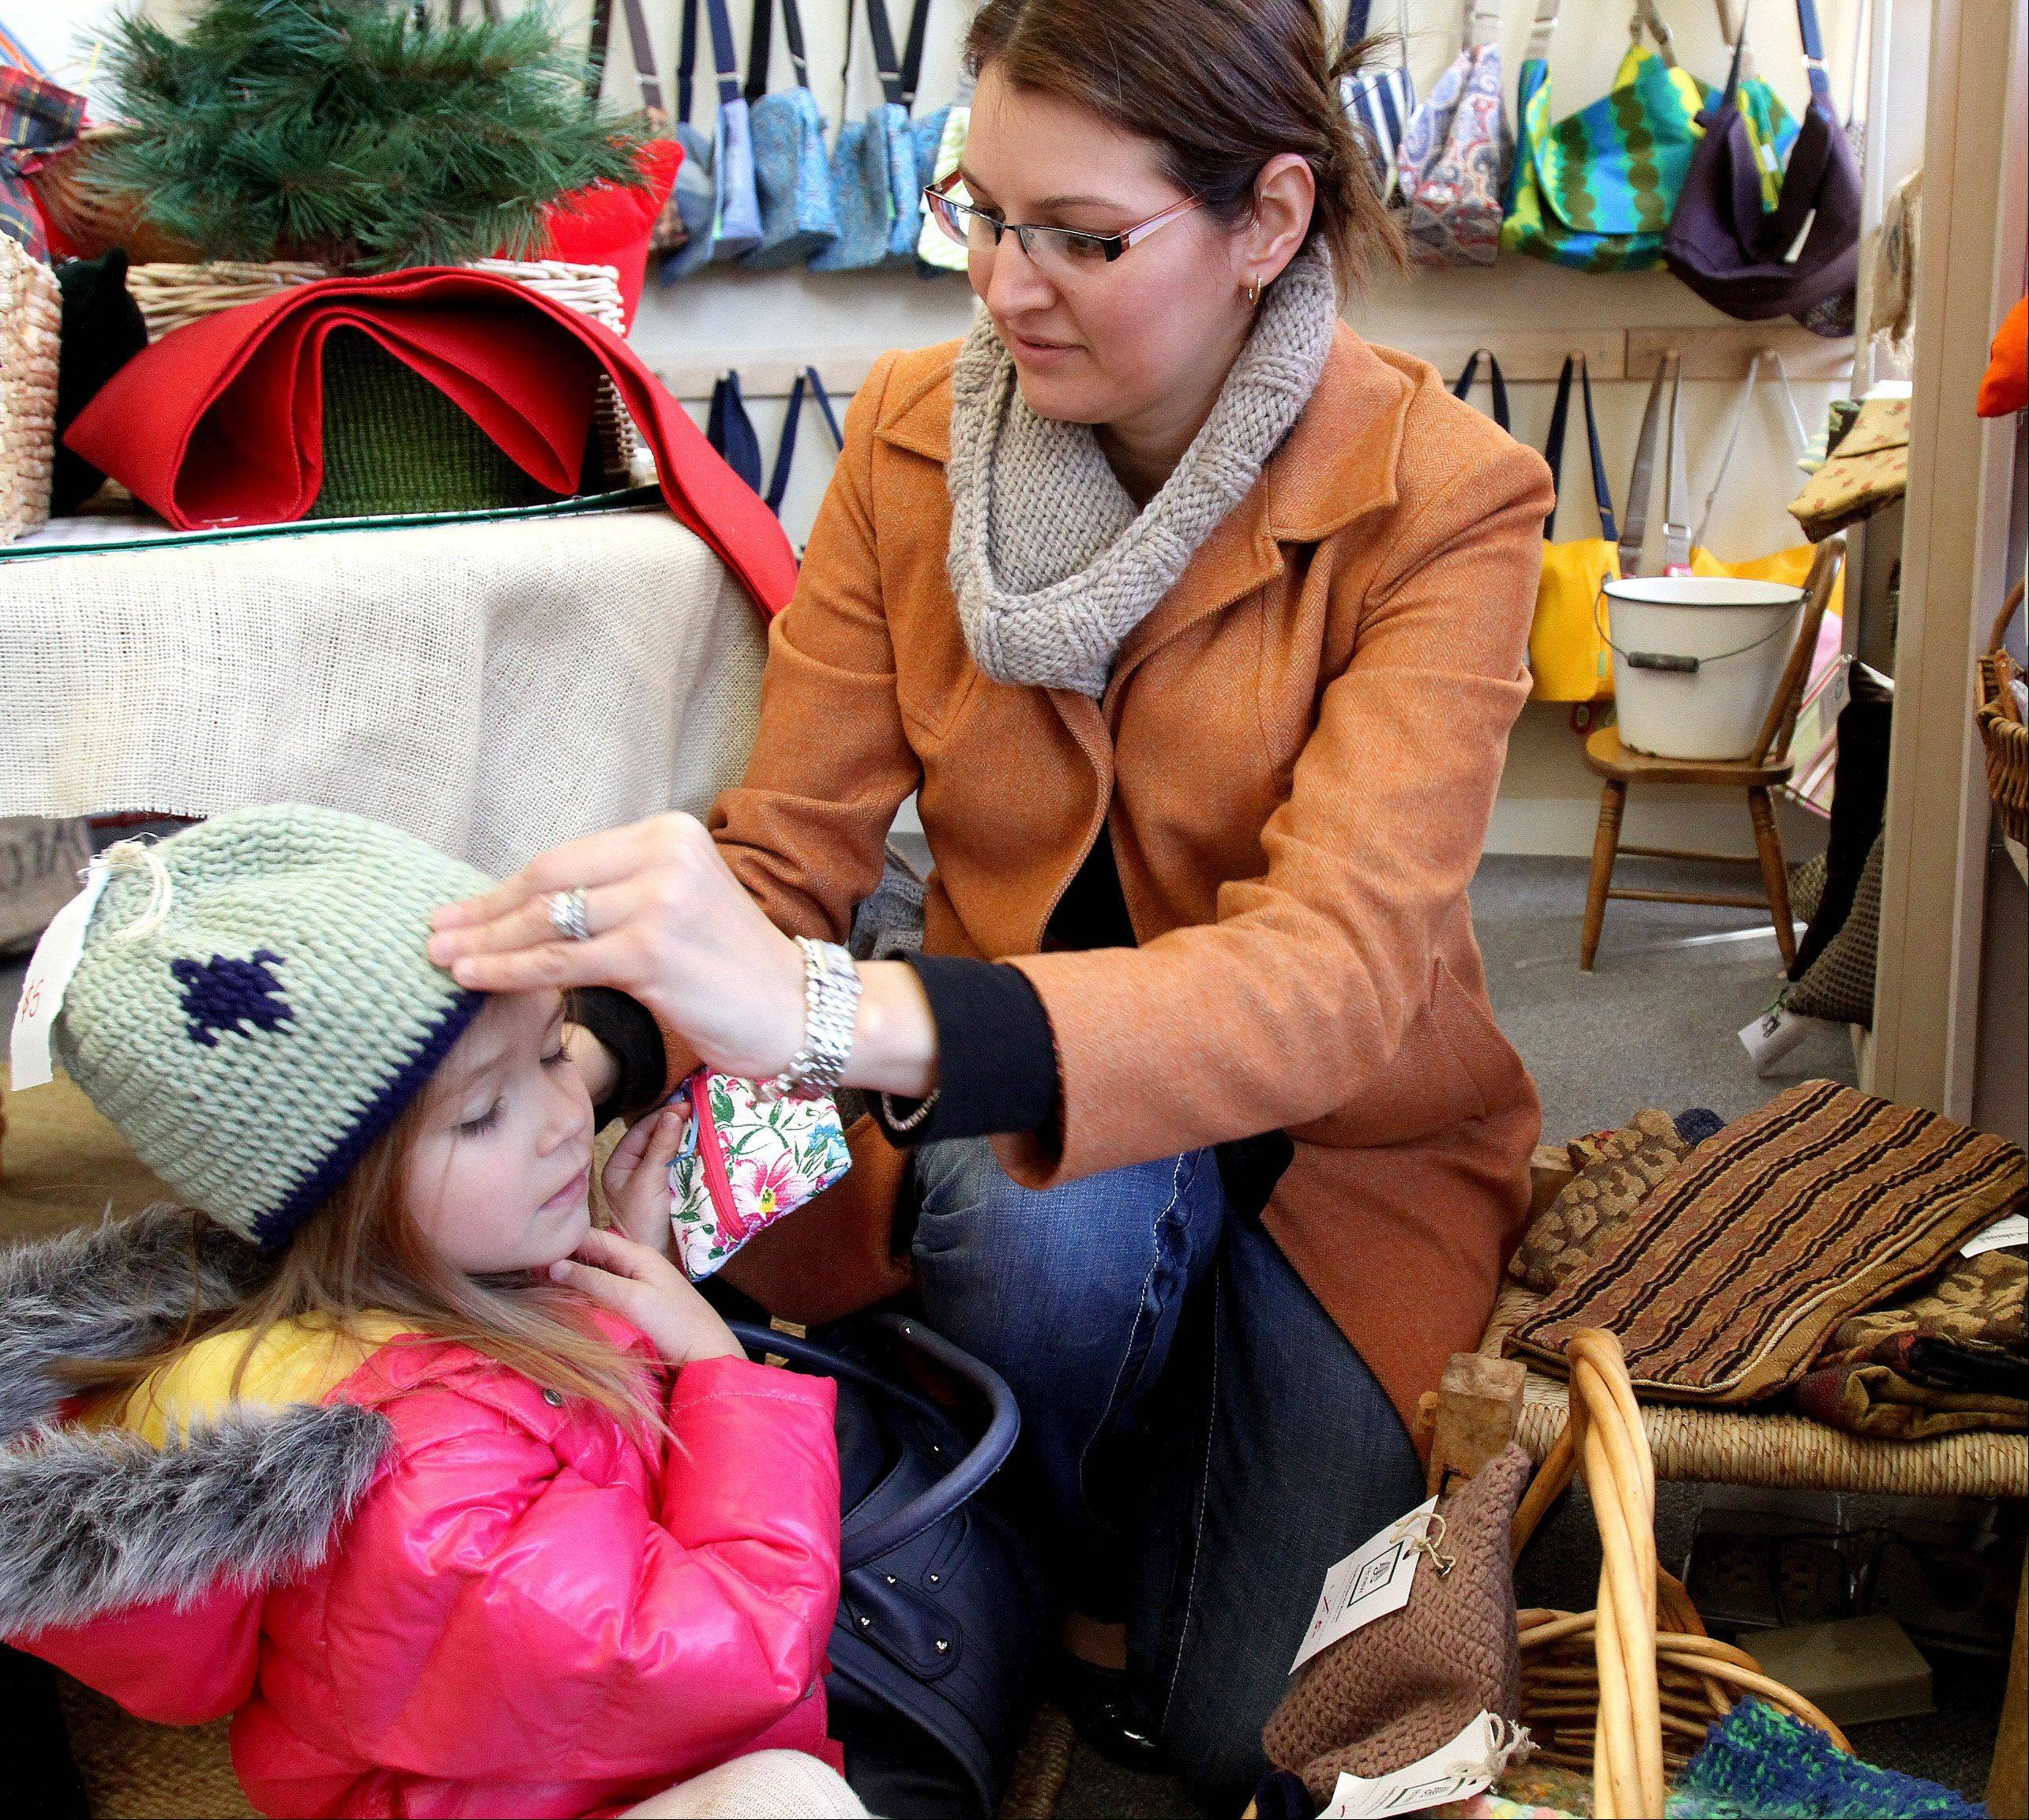 Nicole Smulkstys of Glen Ellyn tries a hat on her daughter Kara, 3, as they shop at Re: new in Glen Ellyn. All the items in the shop are made by refugee women employed by Re: new who work right next to the store.